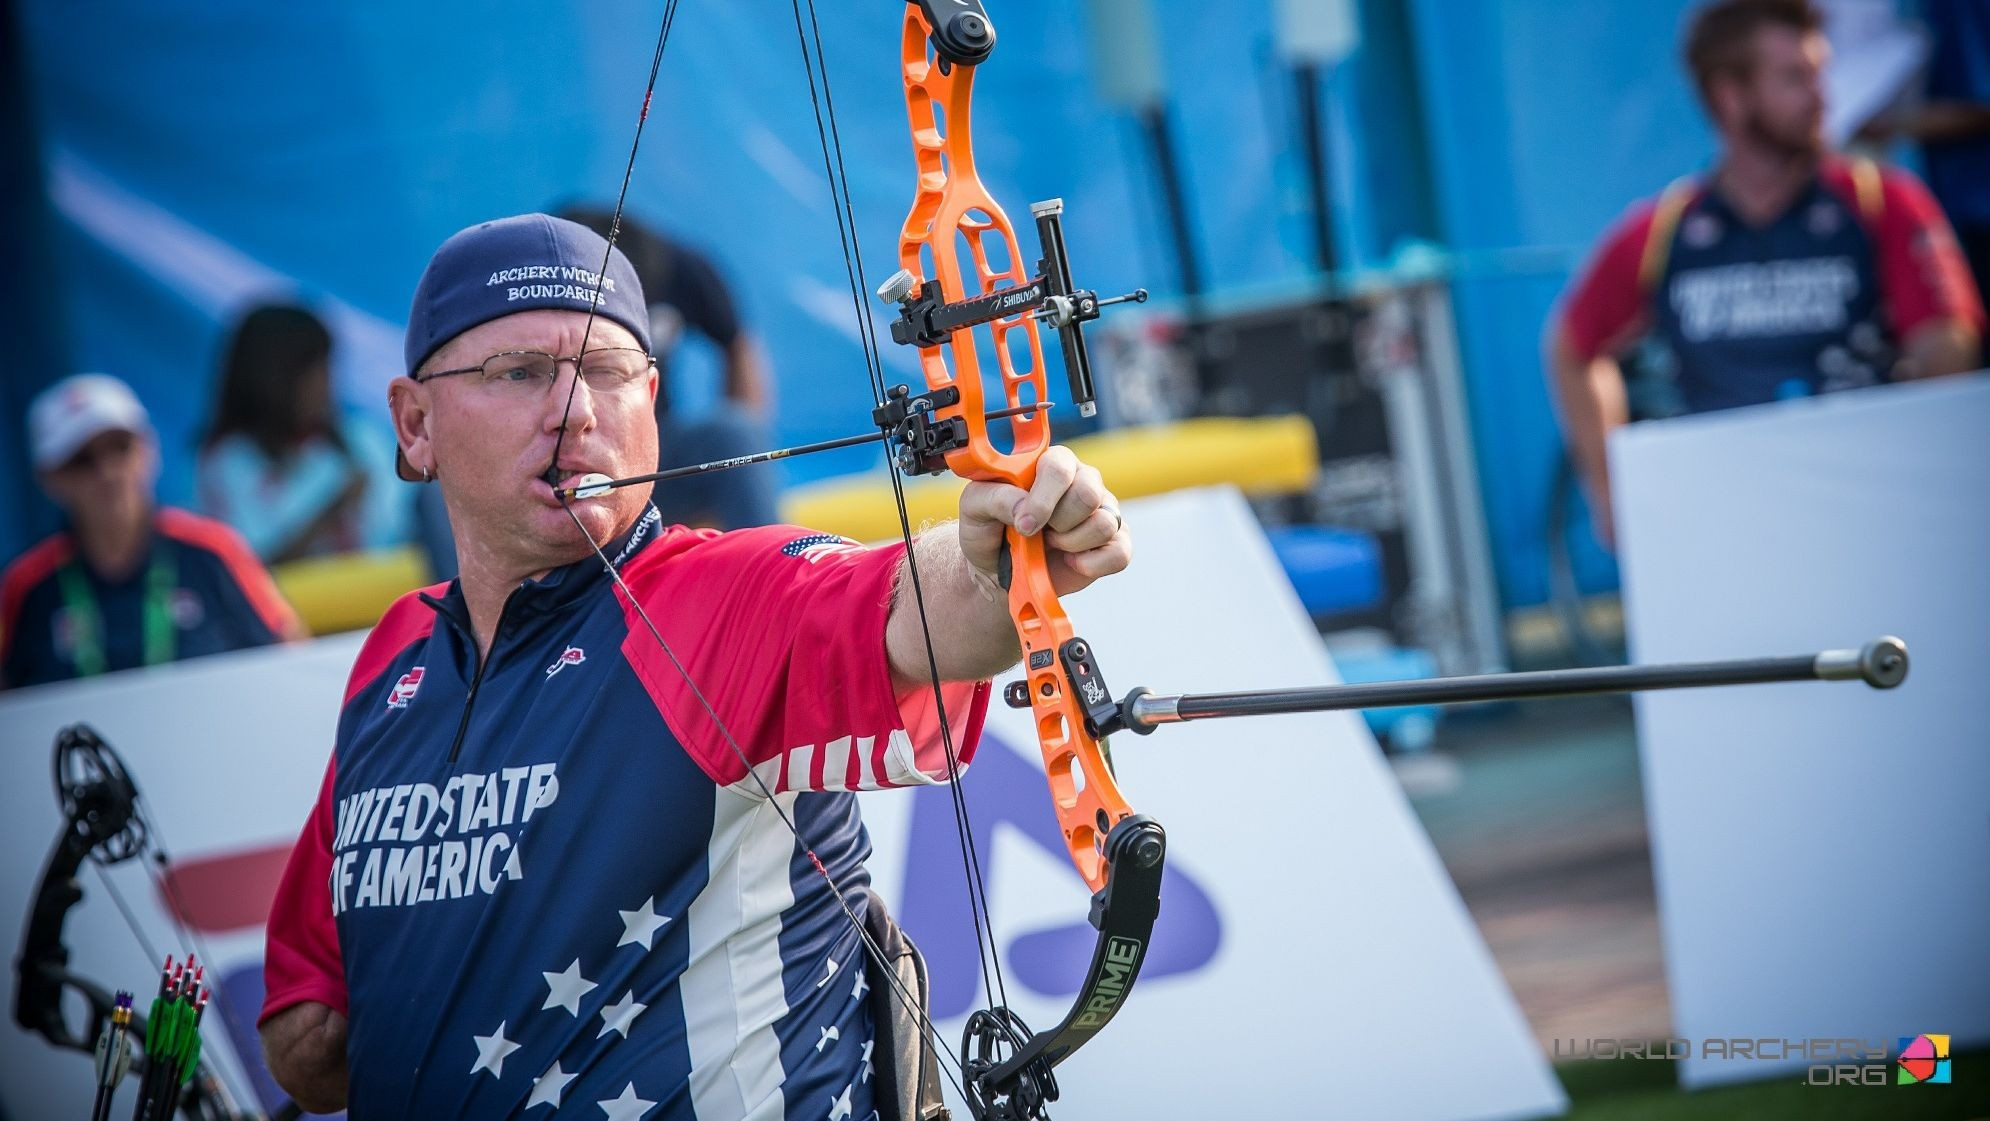 Fabry claims first World Archery Para Championships title for 10 years in Beijing